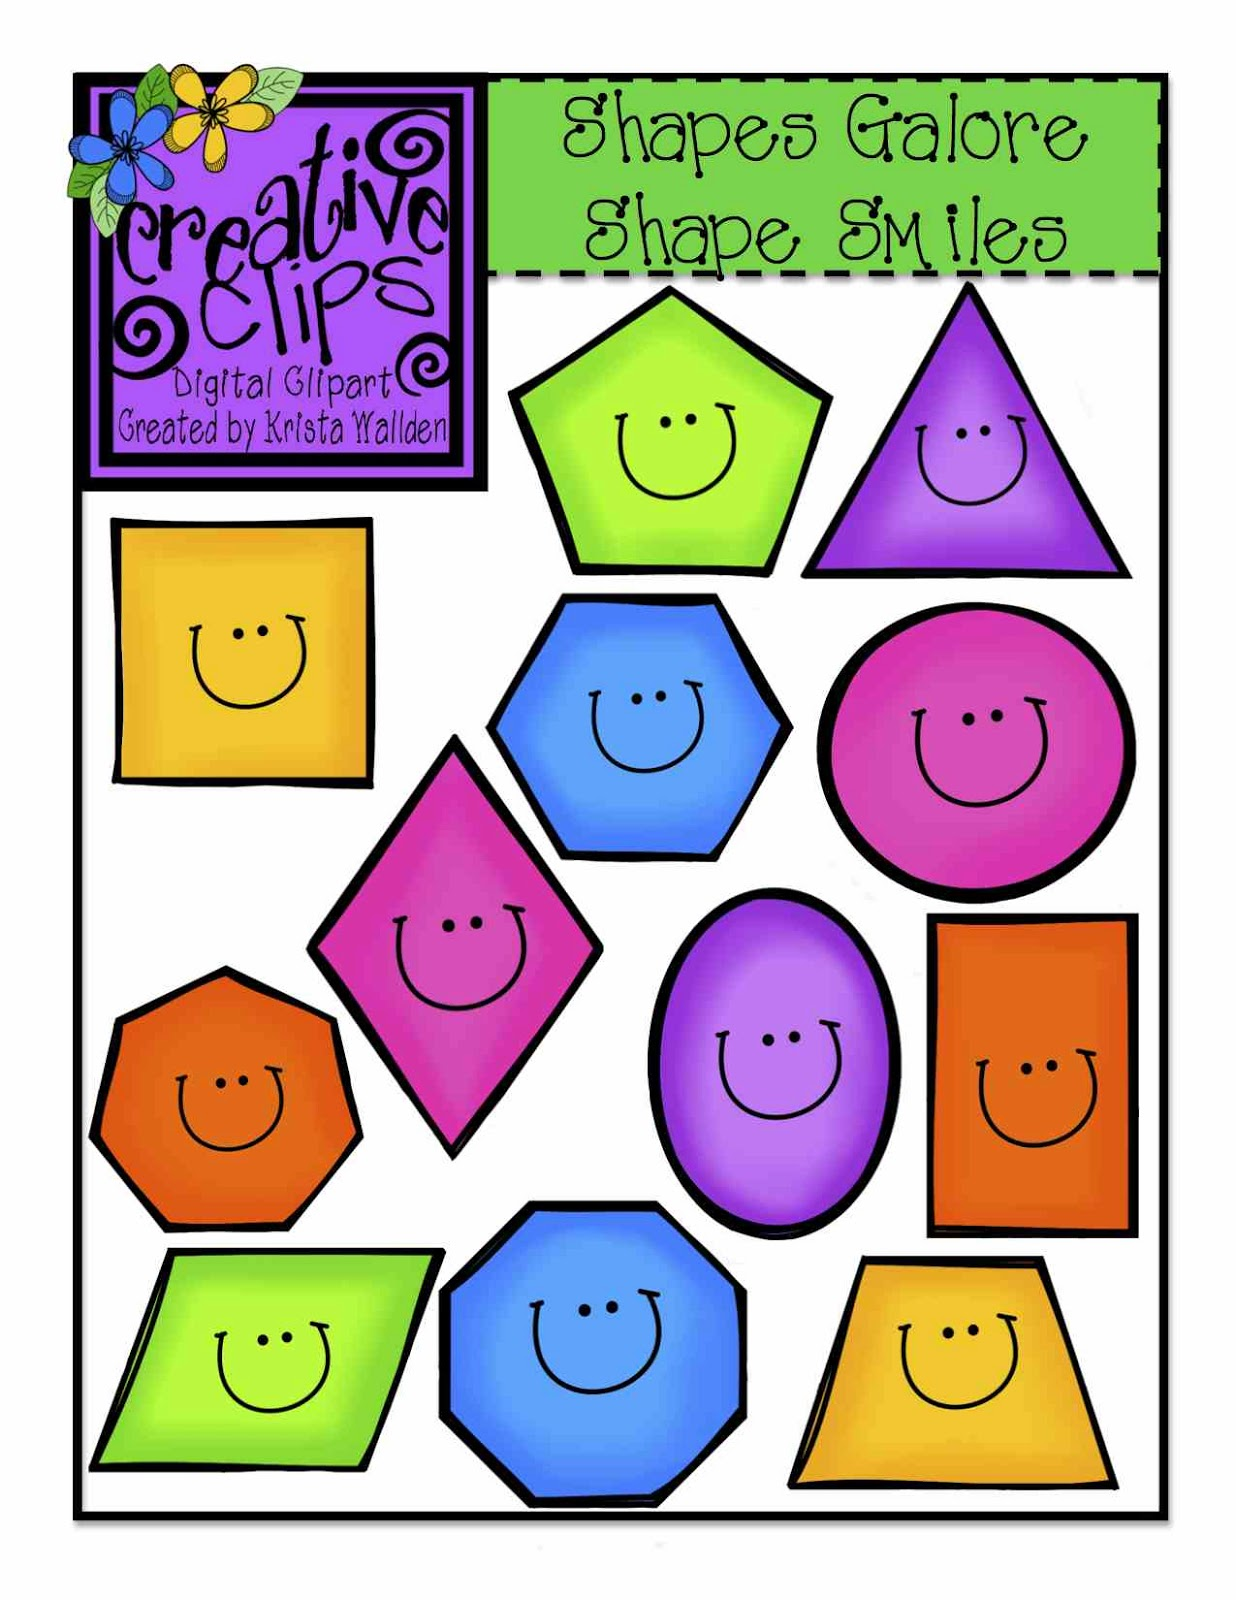 the creative chalkboard free puzzle piece clipart and new shape